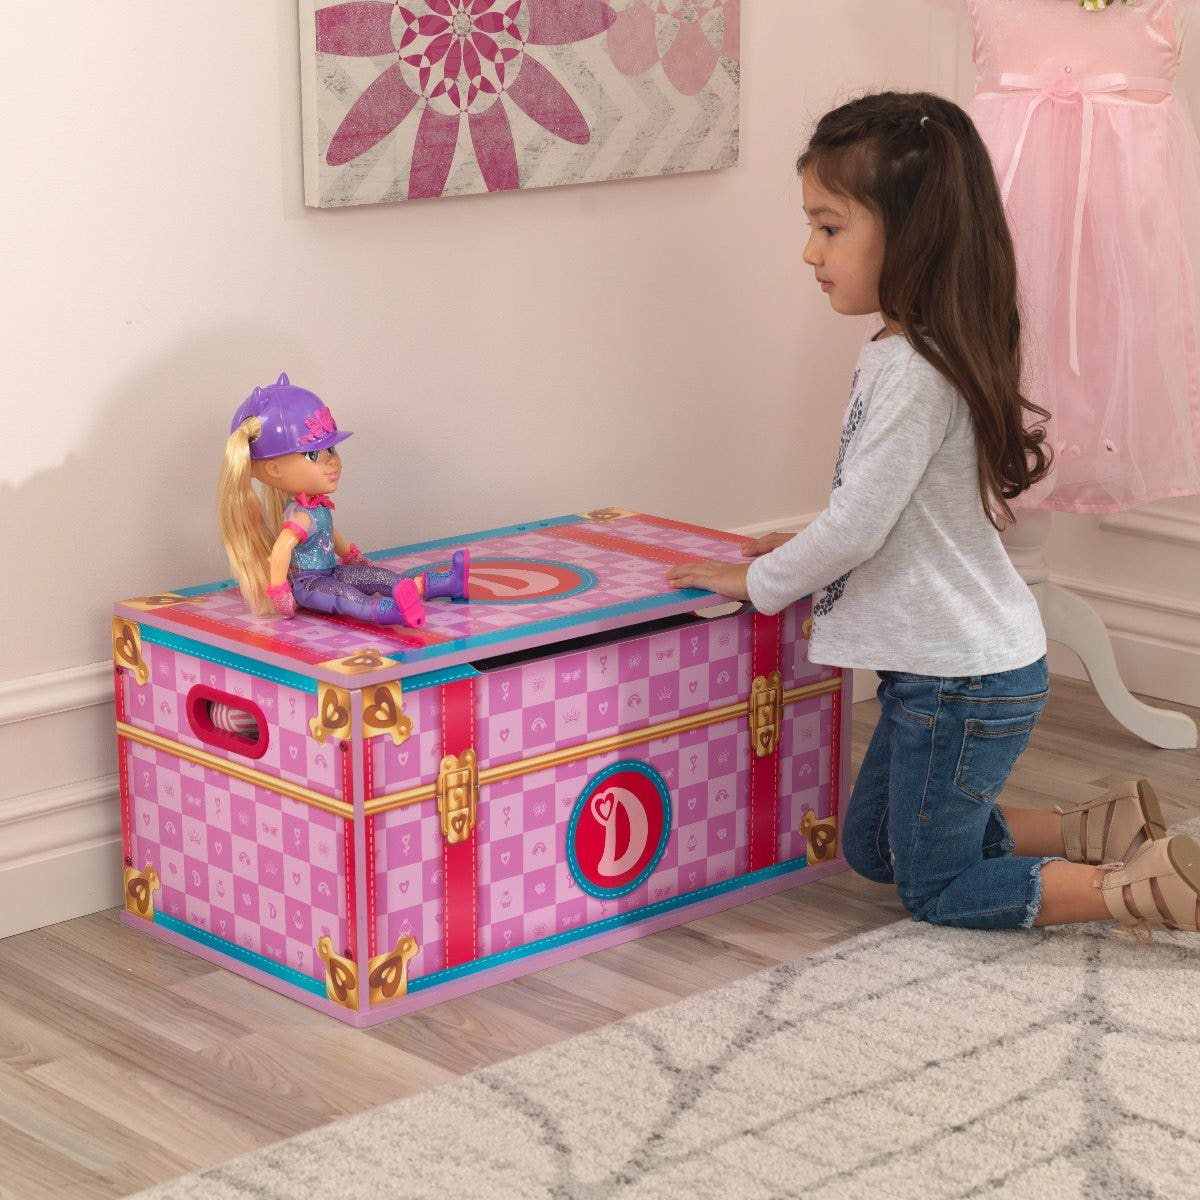 Keep all supplies needed for every episode in a toy box that looks like Diana's